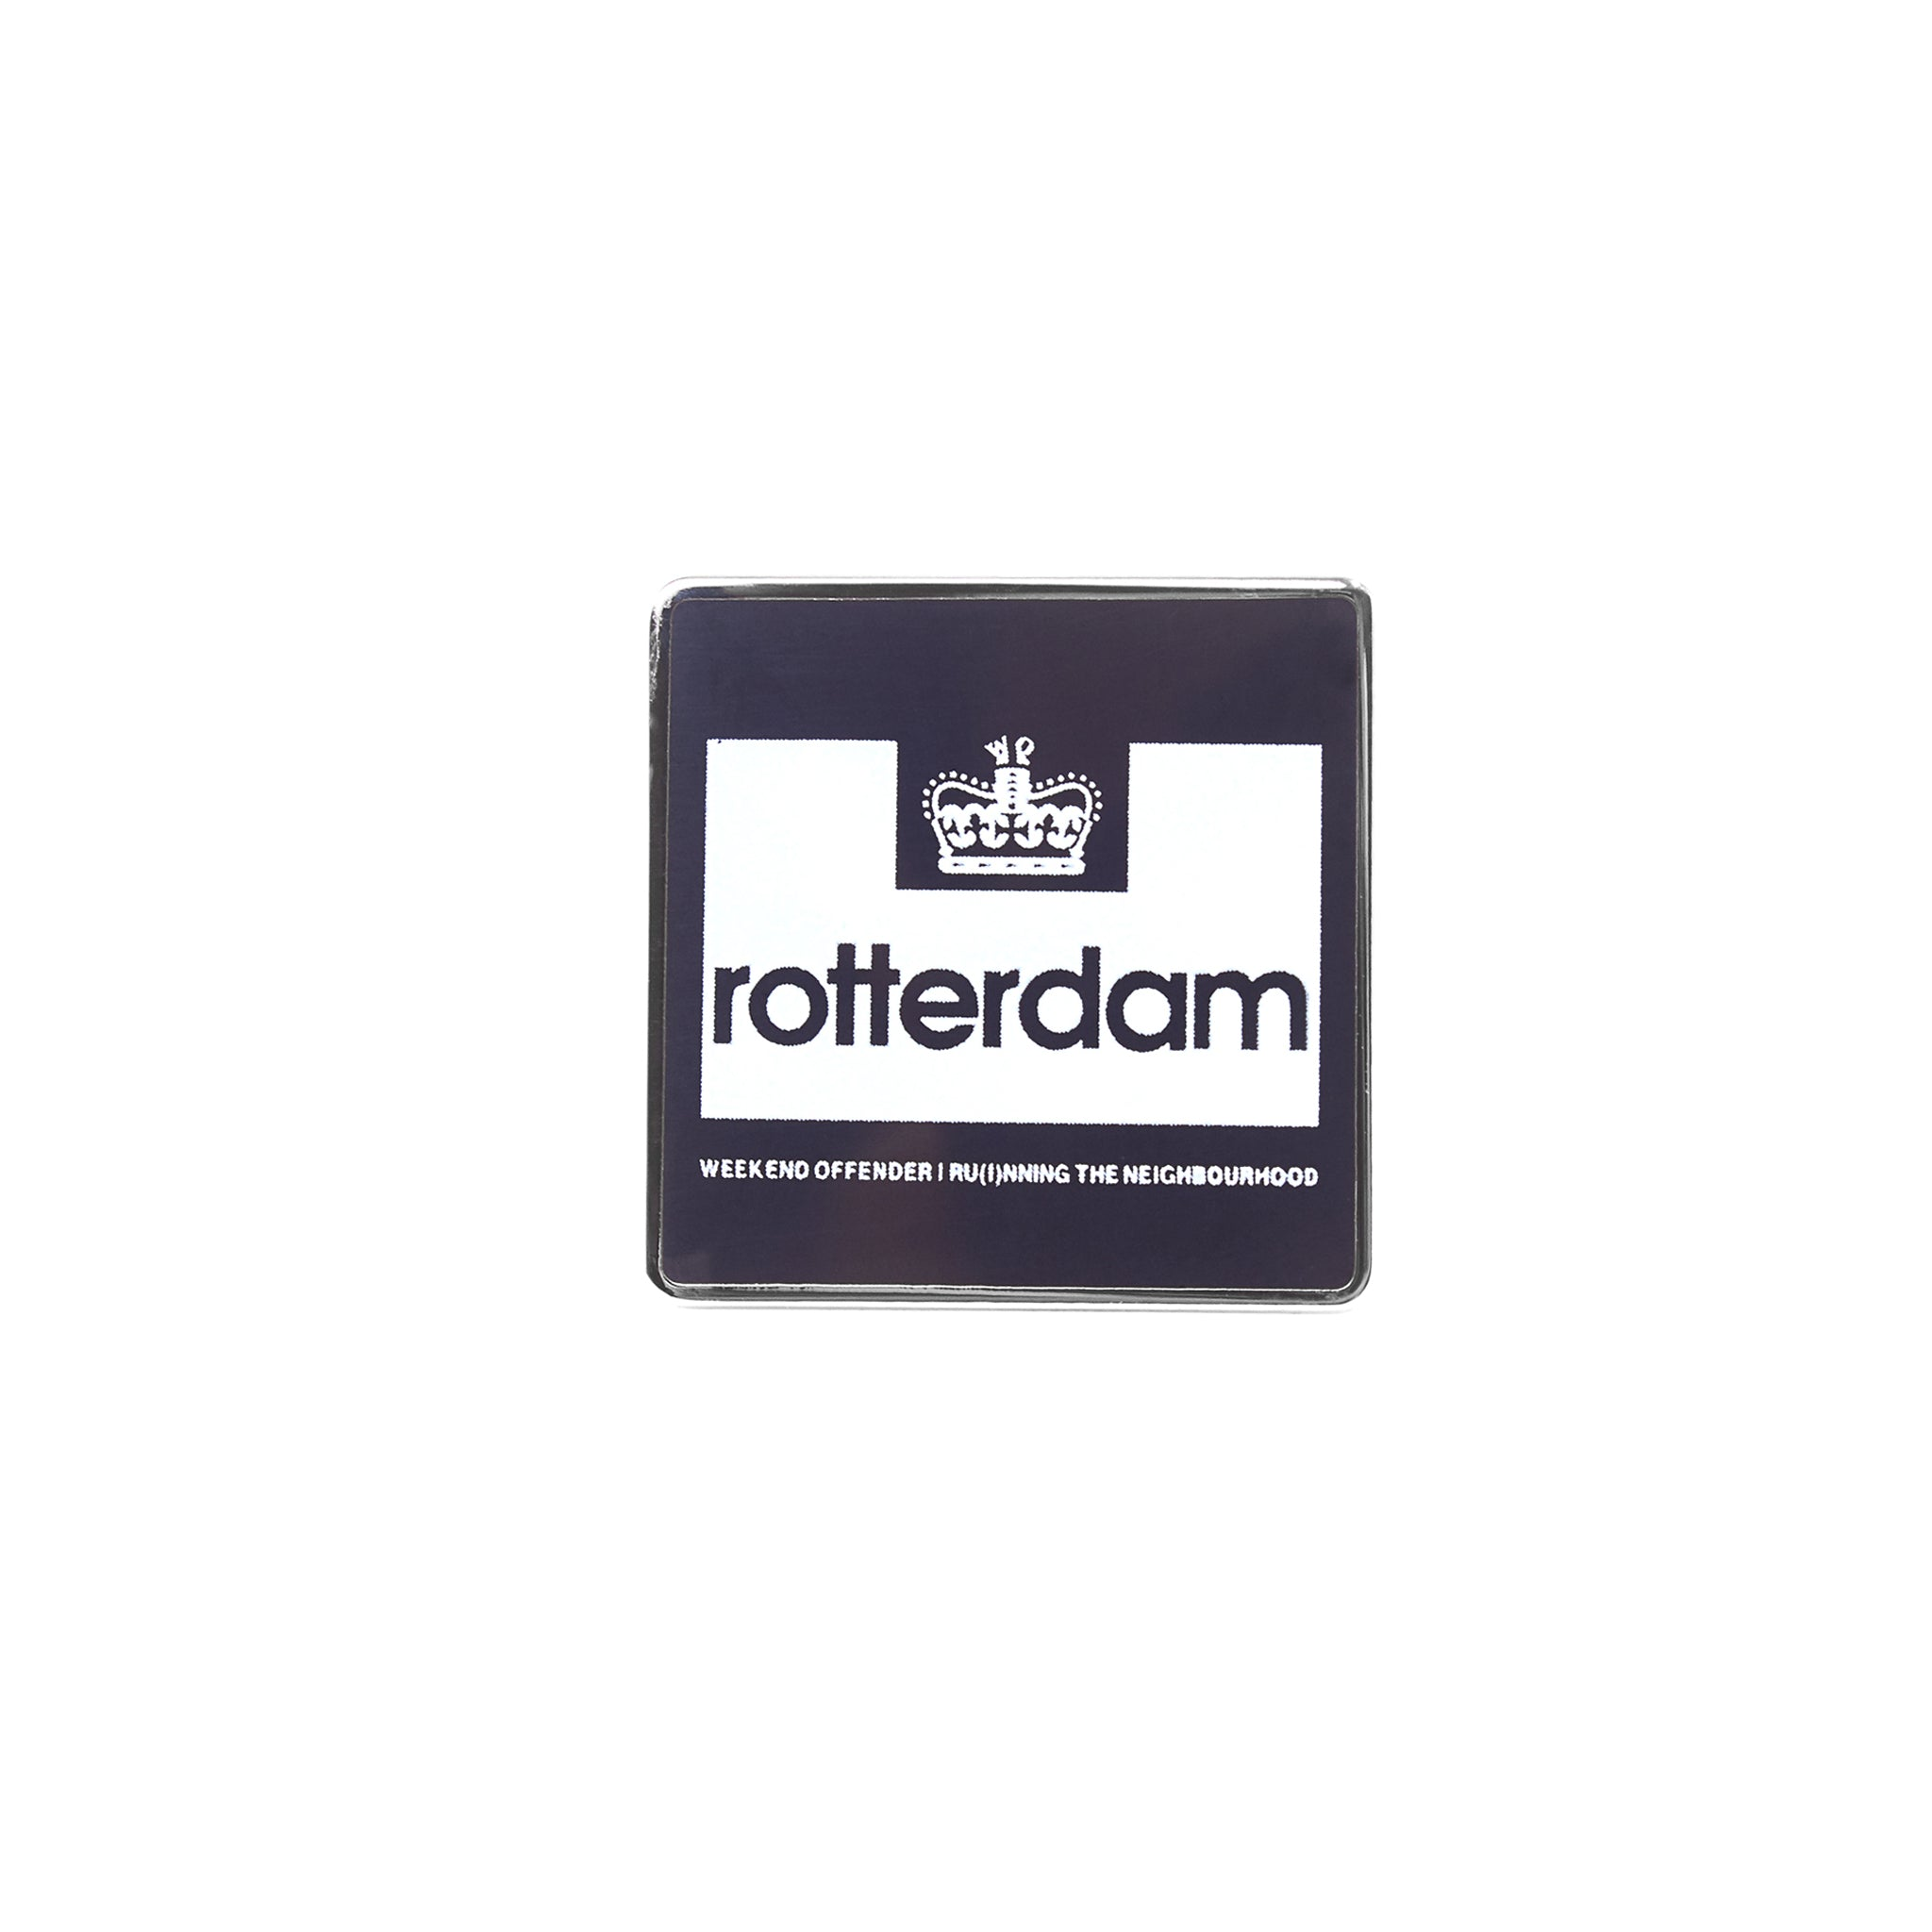 City Series Pin Badge Rotterdam